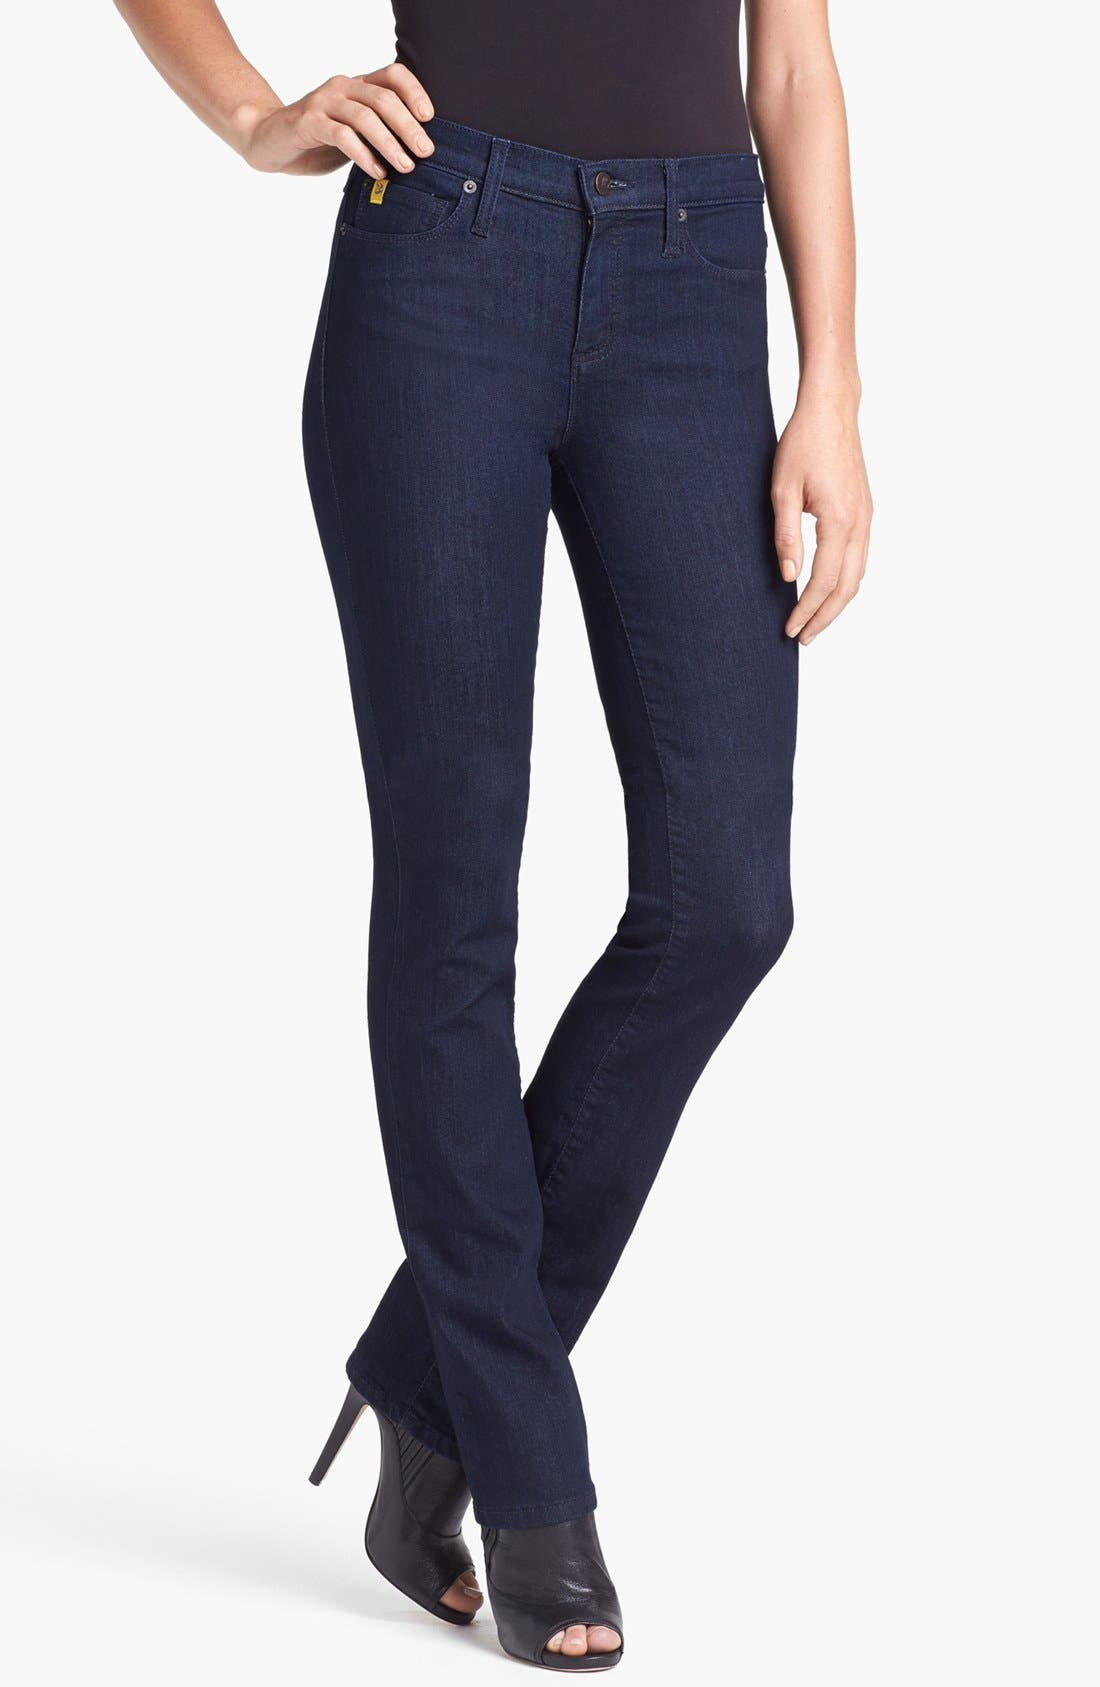 Alternate Image 1 Selected - Yoga Jeans by Second Straight Leg Jeans